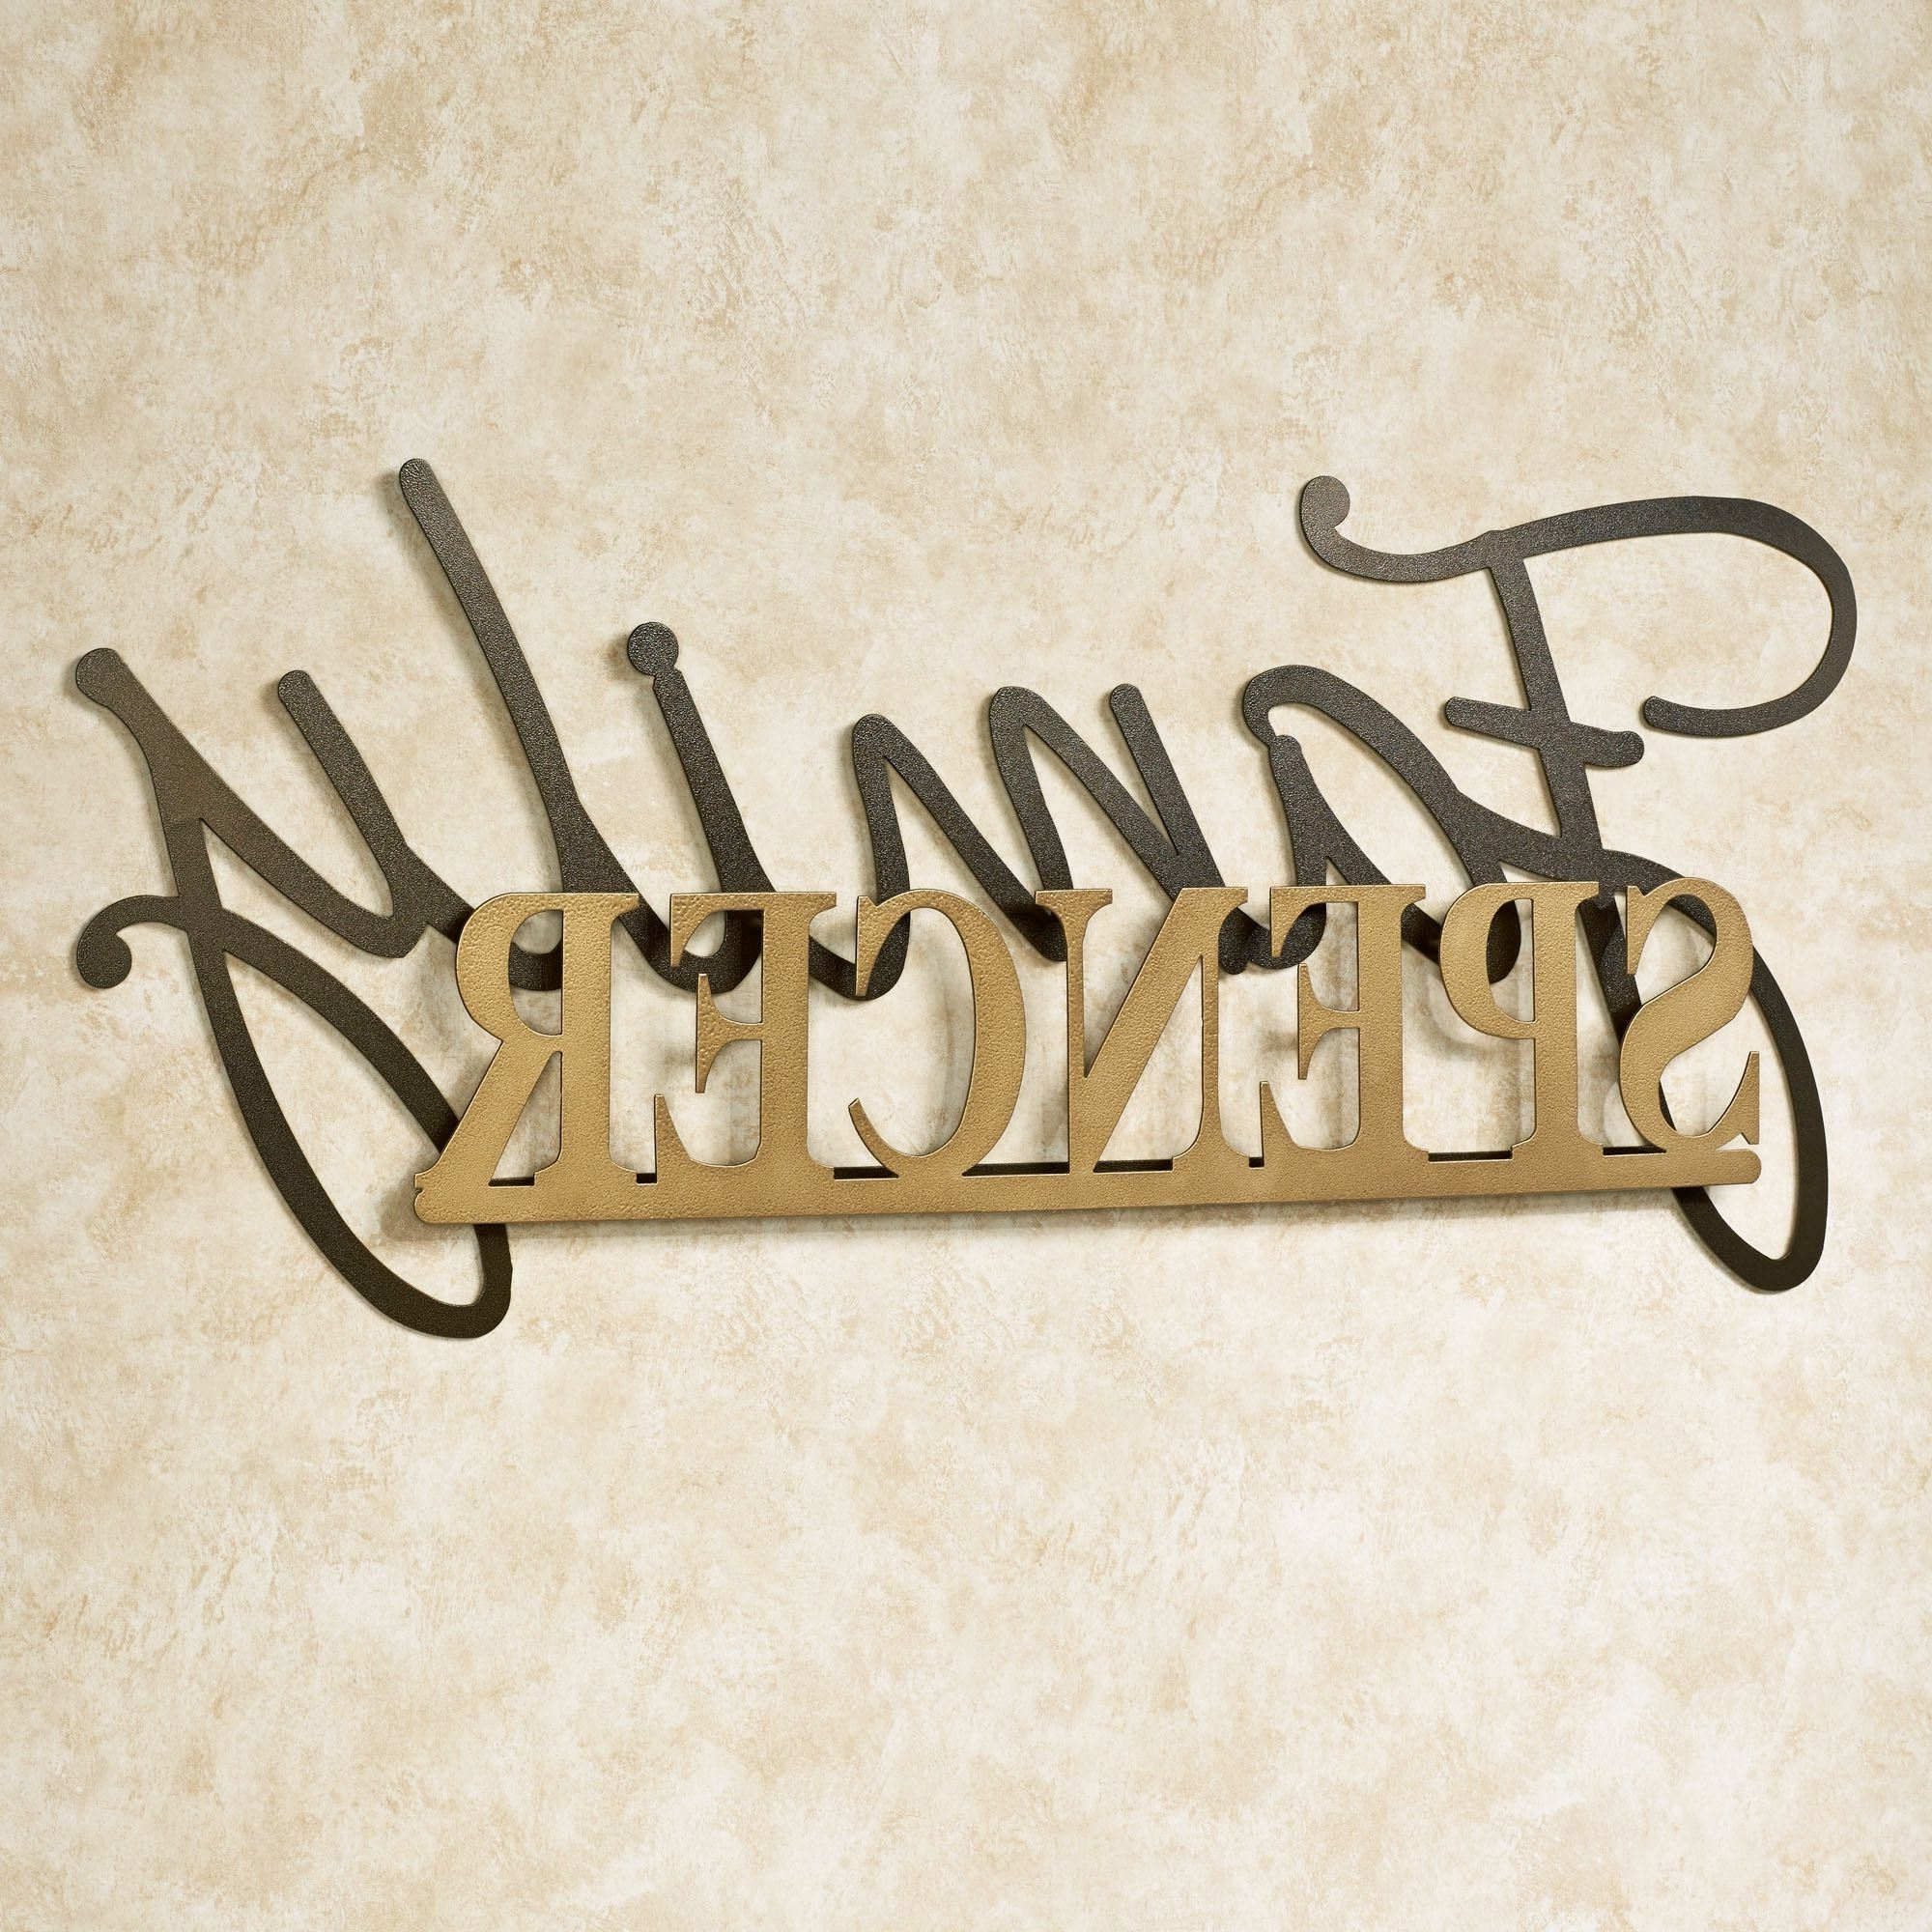 Best And Newest Signature Personalized Metal Wall Art Signjasonw Studios With Personalized Metal Wall Art (Gallery 6 of 20)